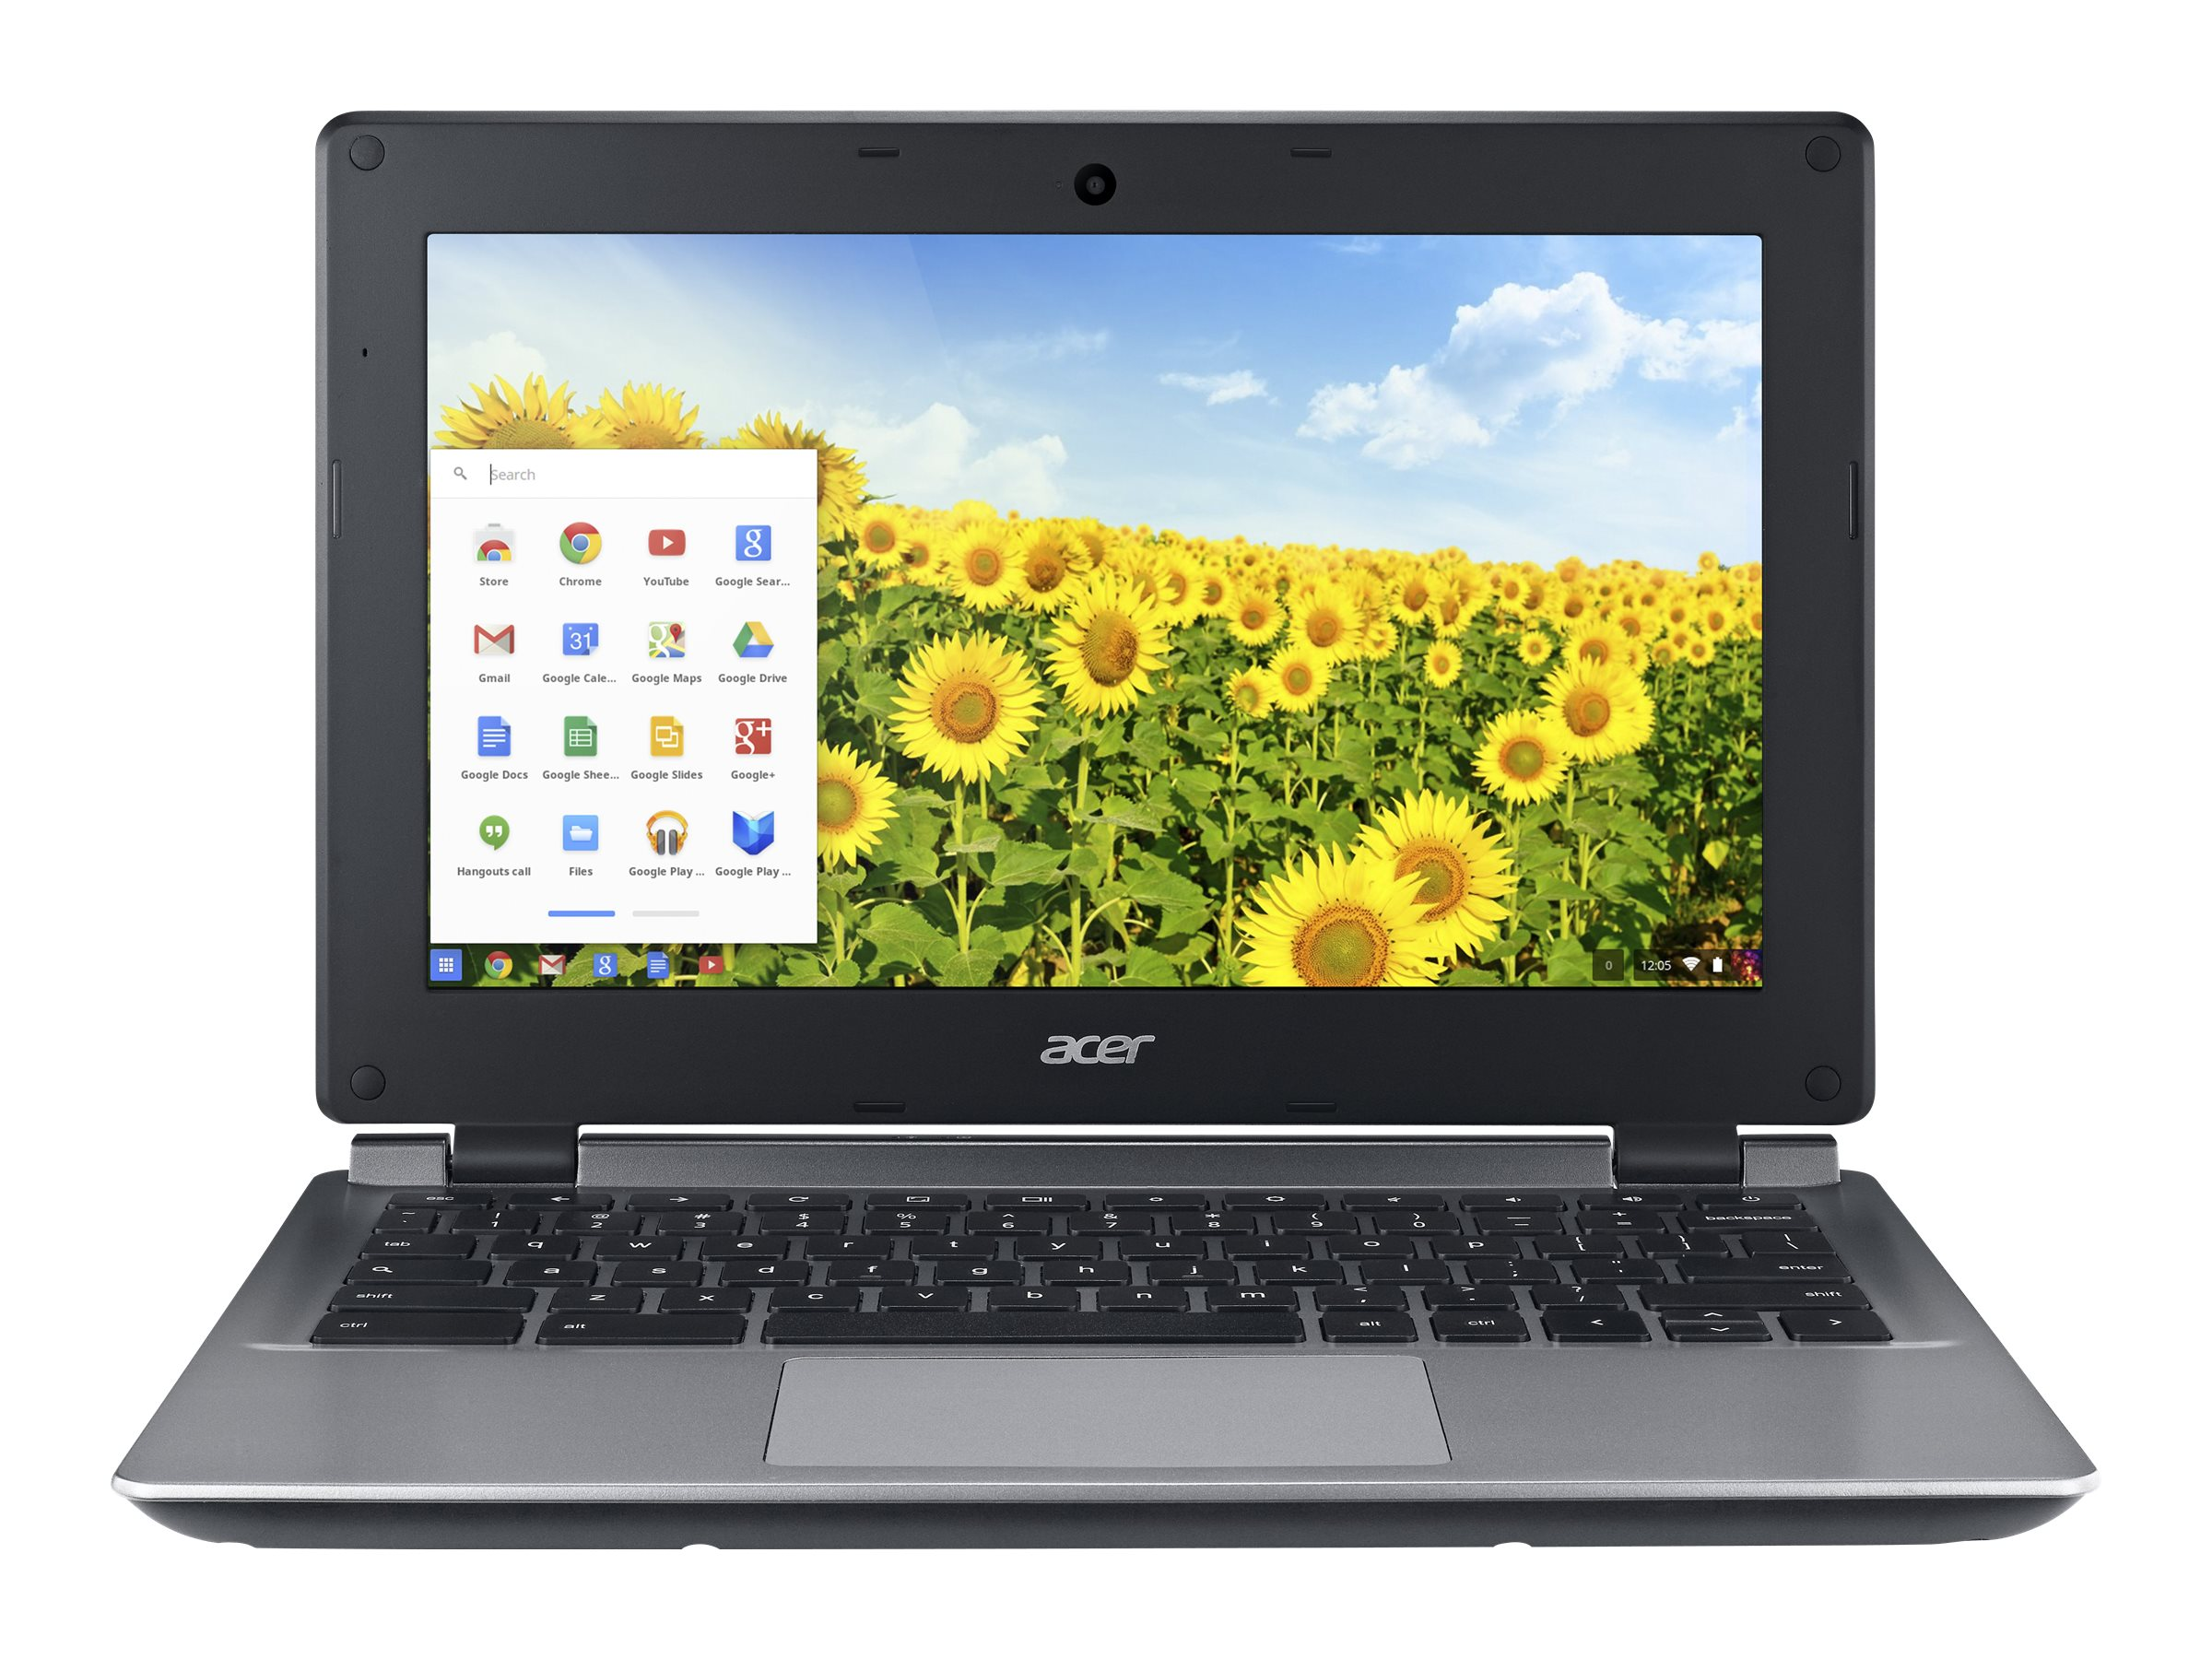 Acer Chromebook 11 C730E-C4BA 2.16GHz Celeron 11.6in display, NX.GC1AA.001